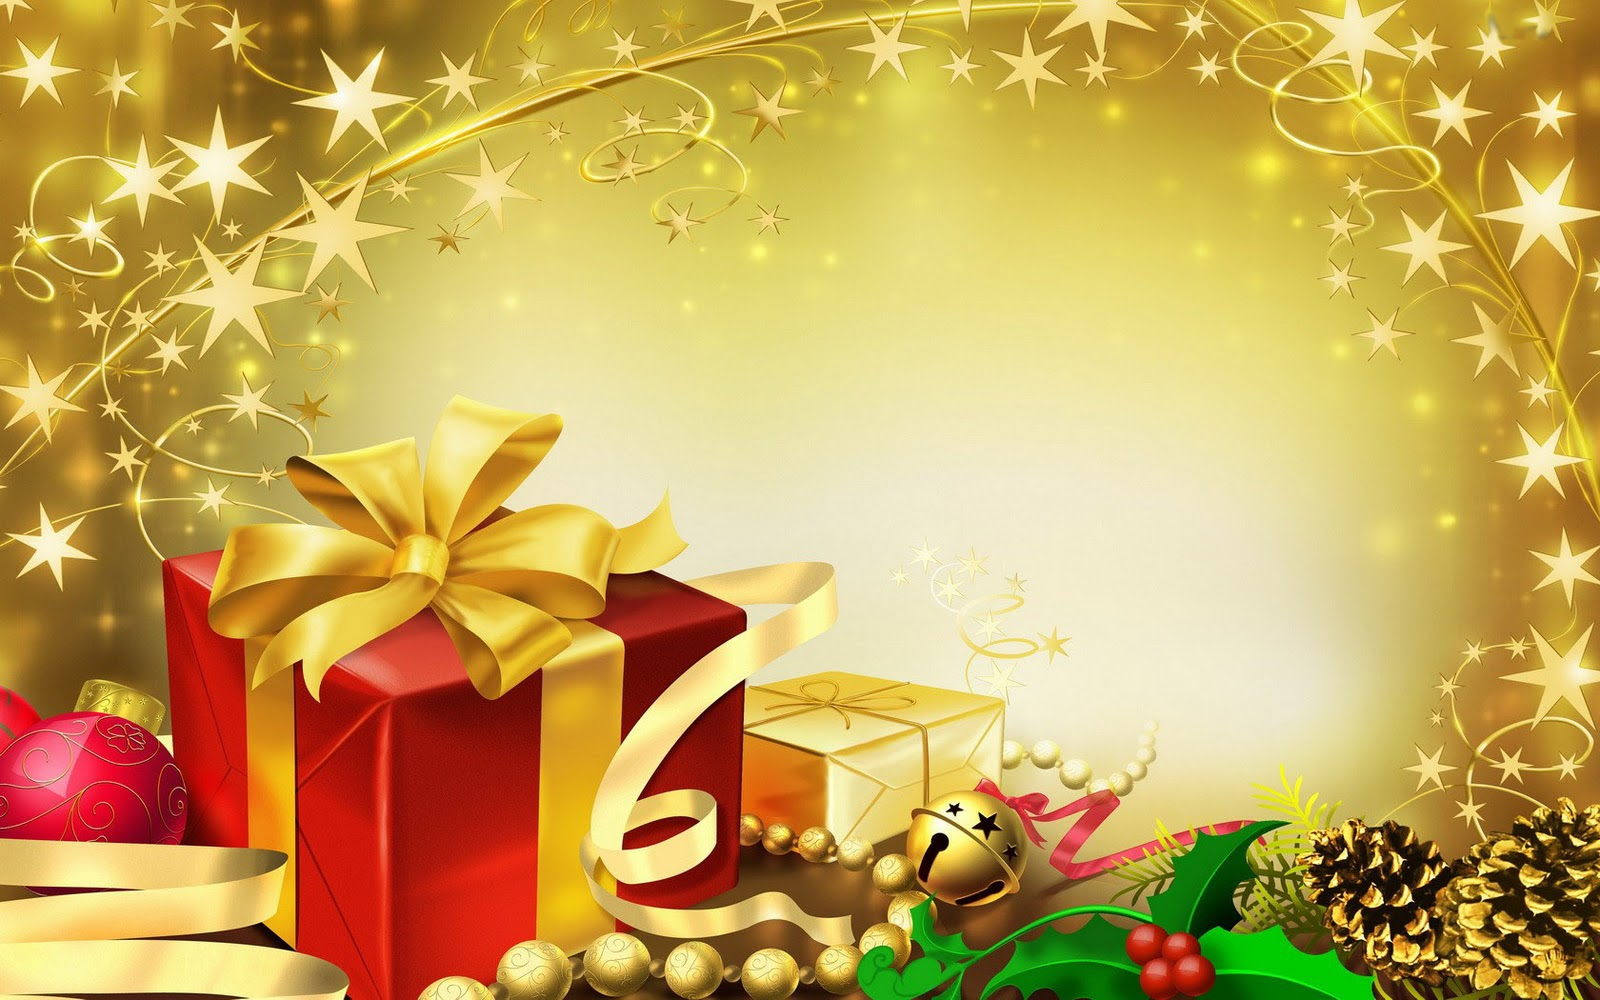 Gift Wrapping Christmas Wallpaper Urban Art Wallpaper